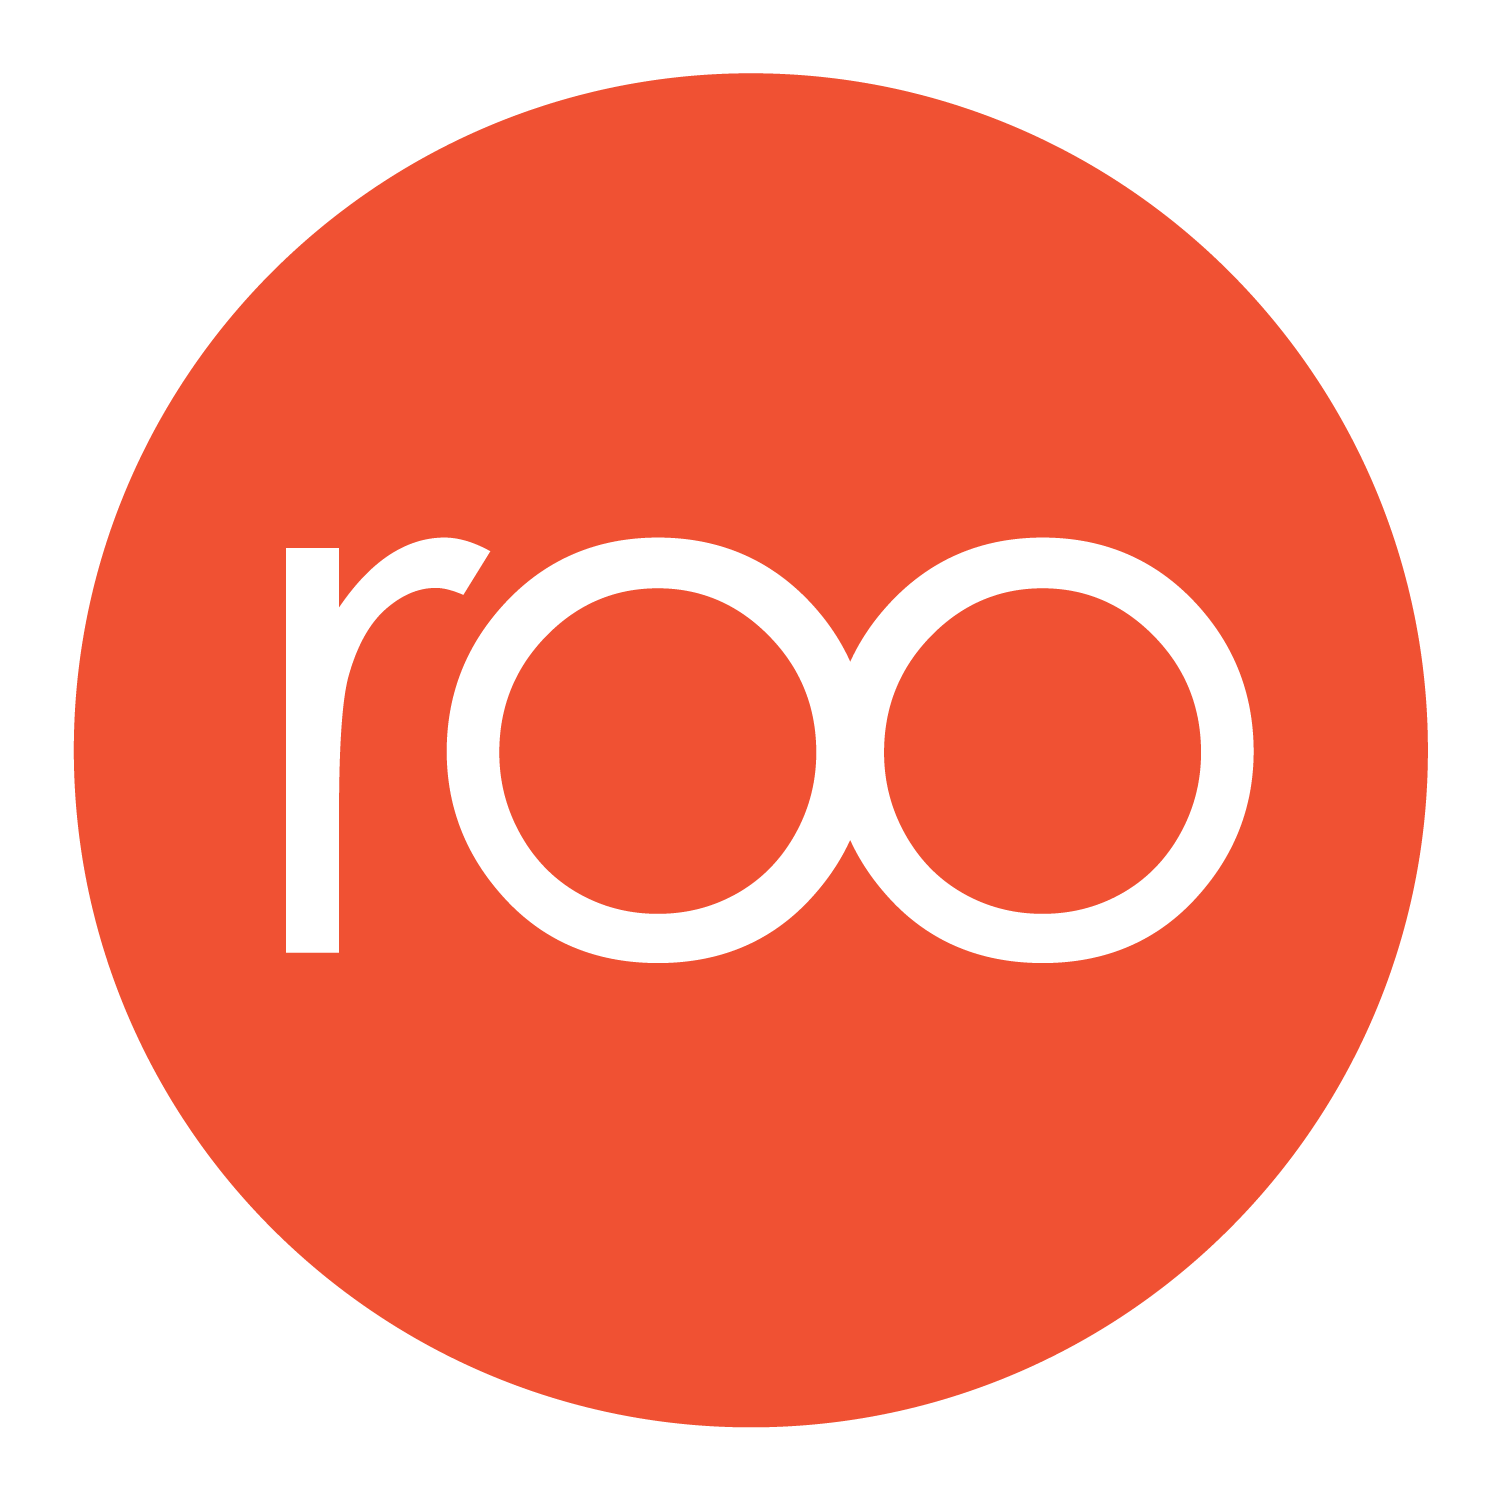 roologofilled